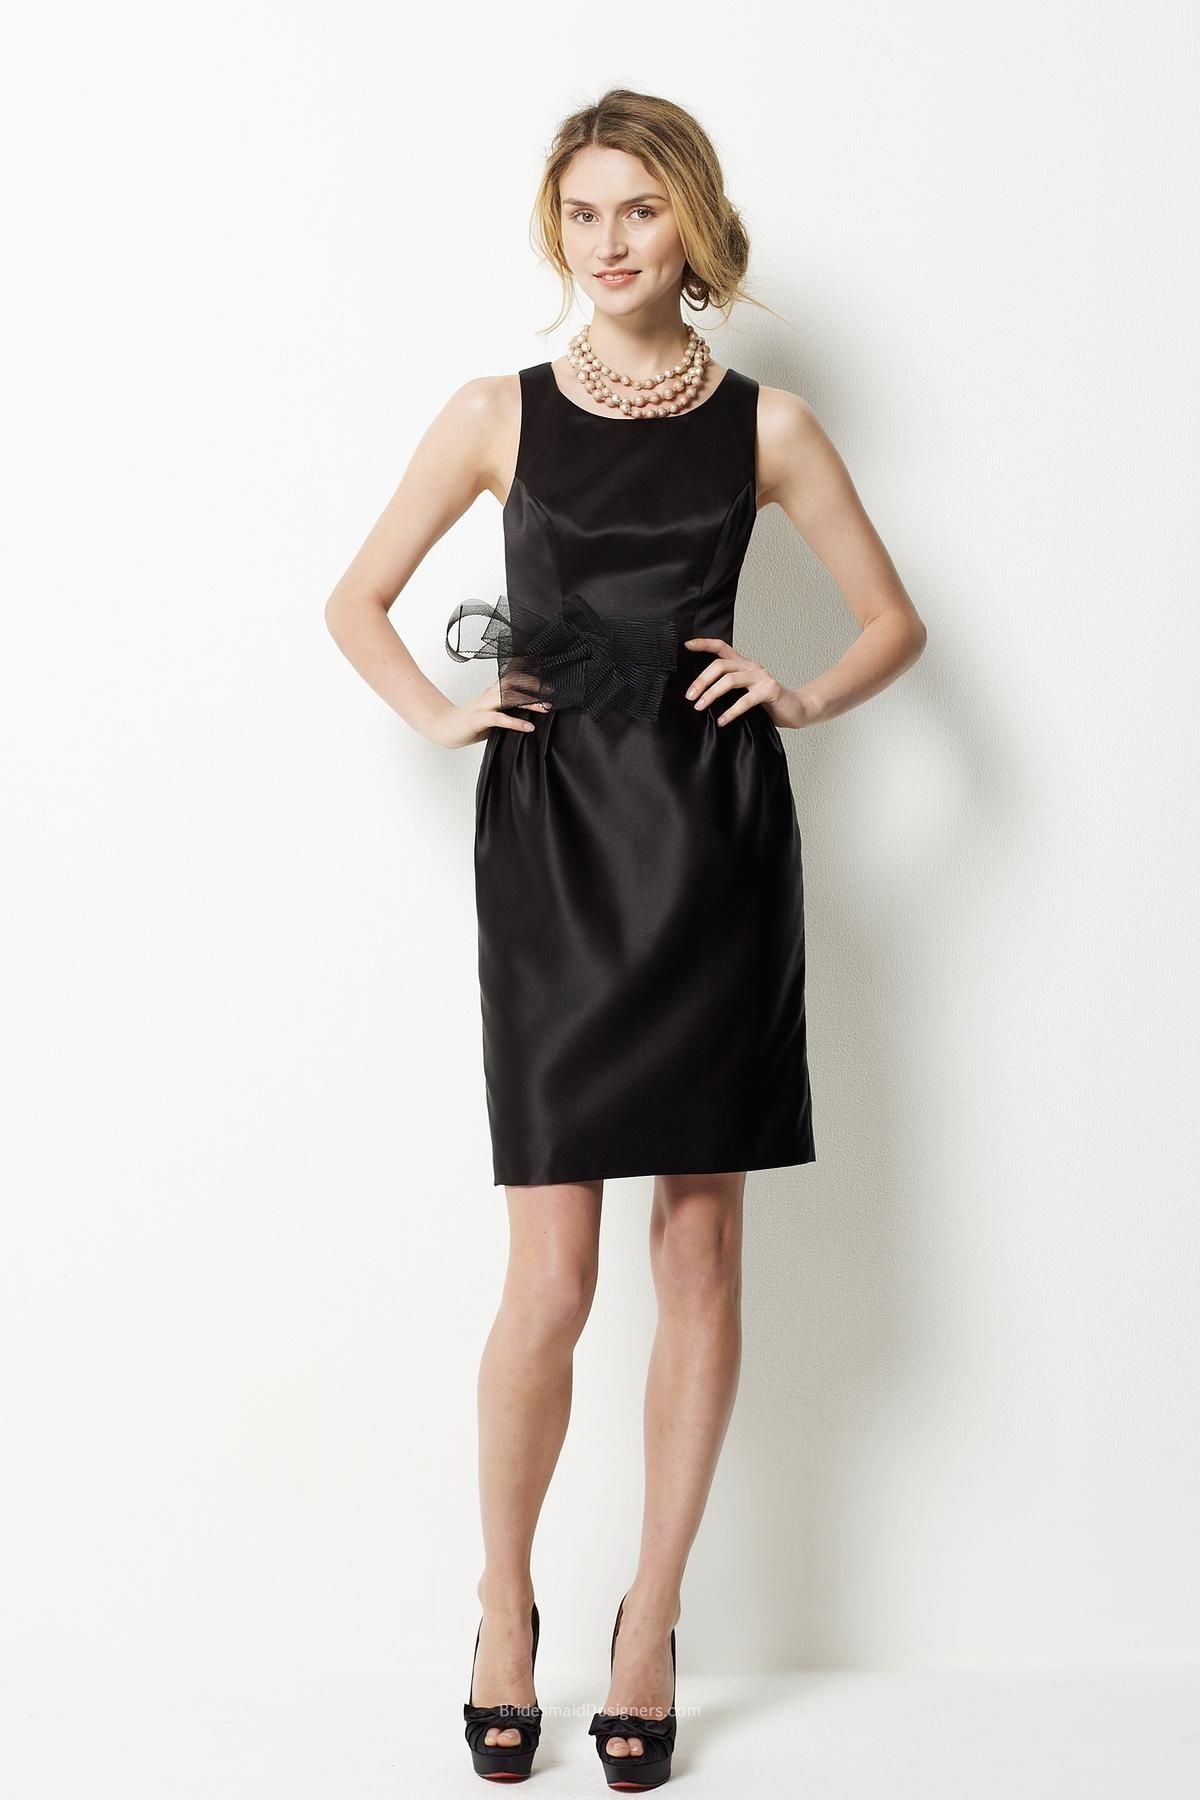 Sleeveless black satin sheath short bridesmaid dress with tulle bow